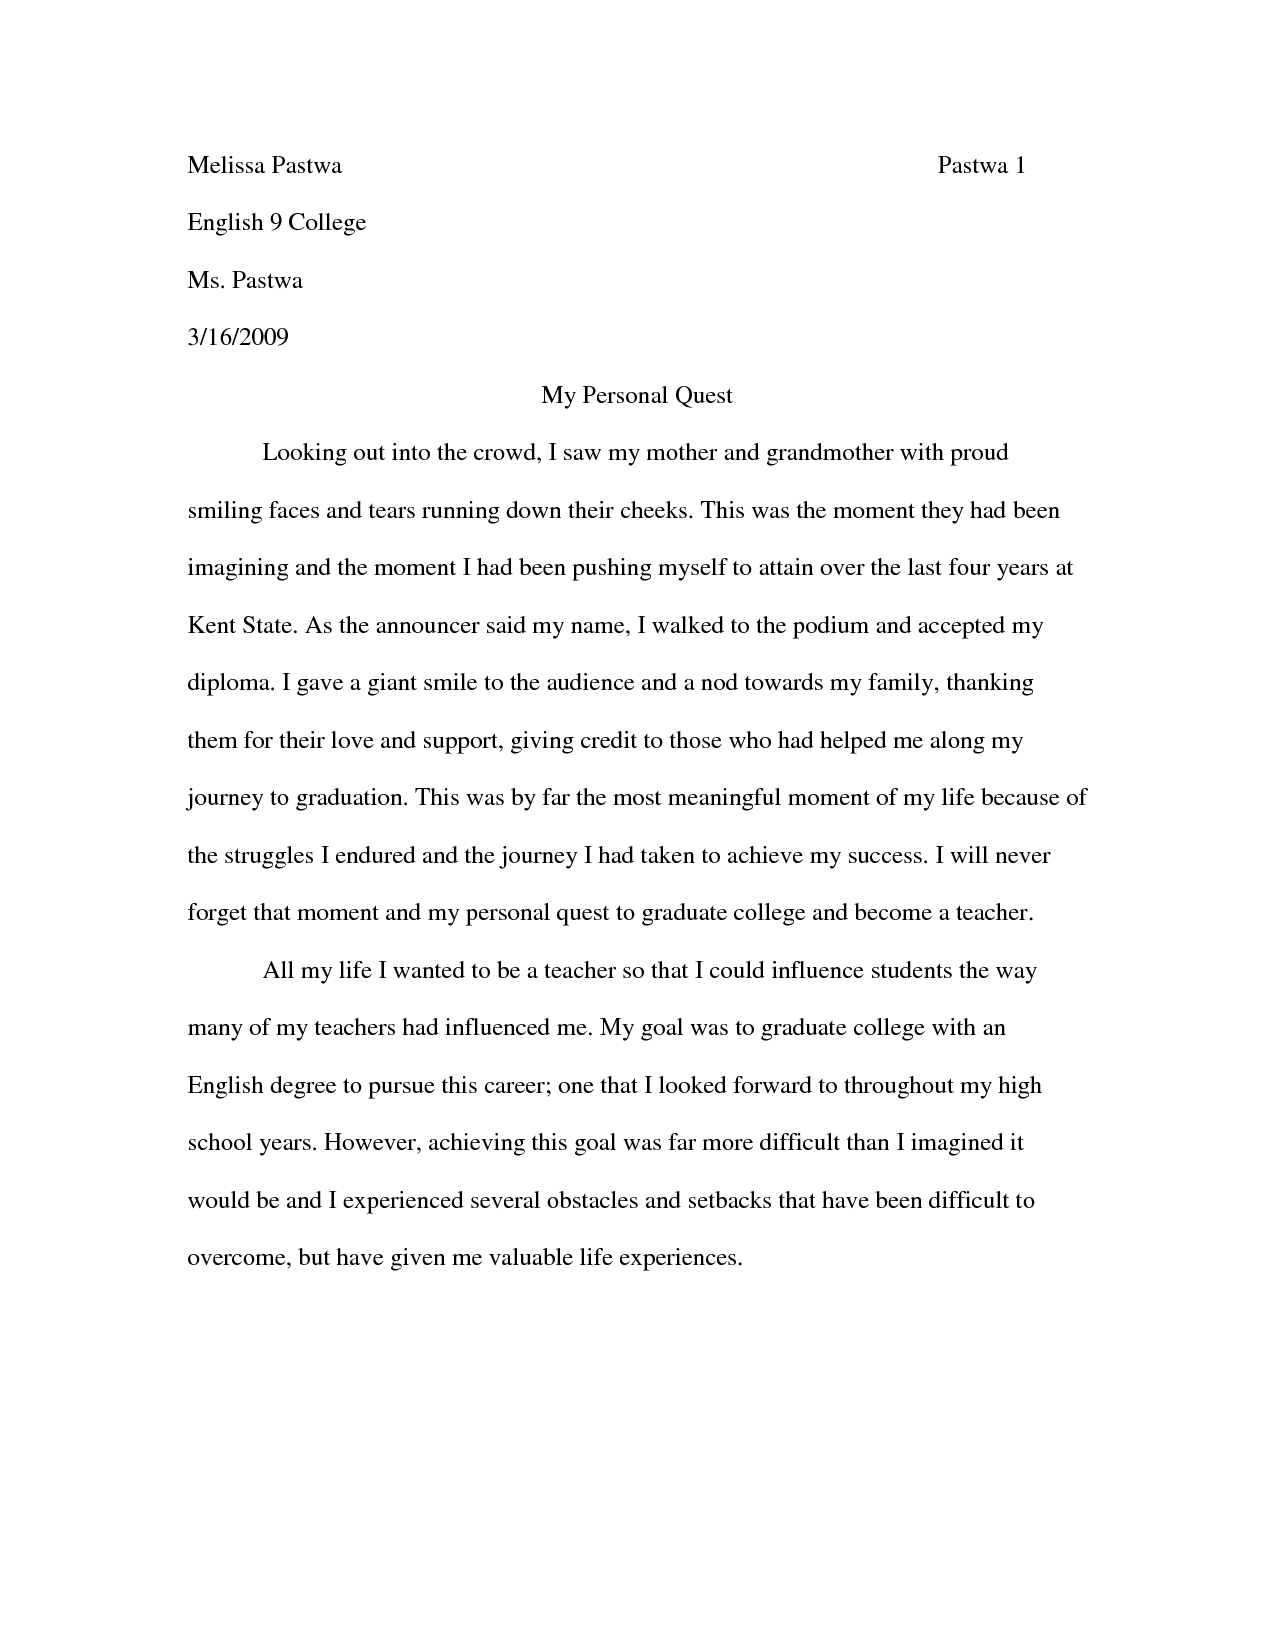 007 Essay Example Narrative Dialogue Of L Magnificent About Yourself Introduction Friendship Full